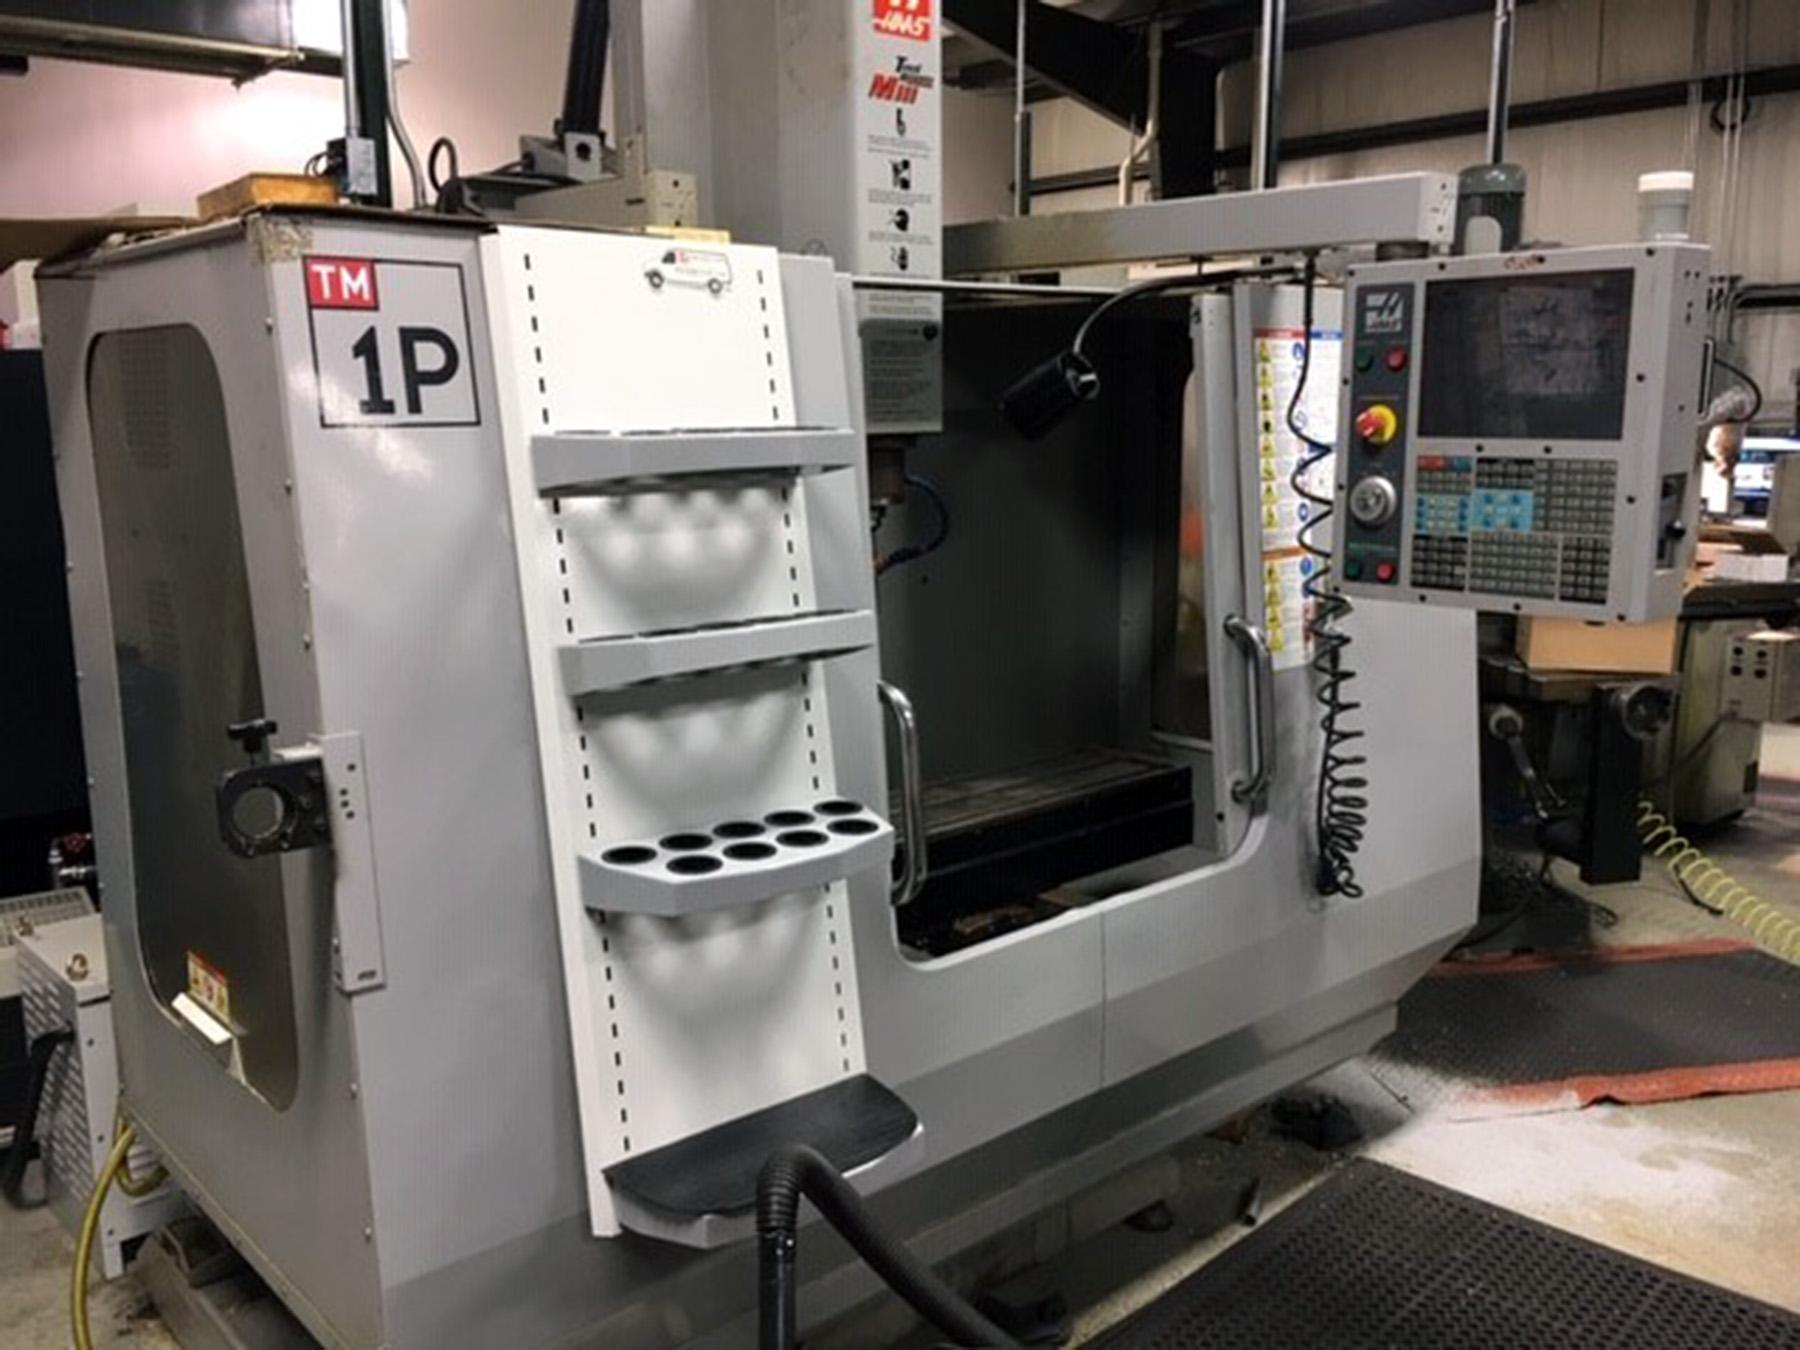 USED, HAAS TM-1P CNC VERTICAL MACHINING CENTER